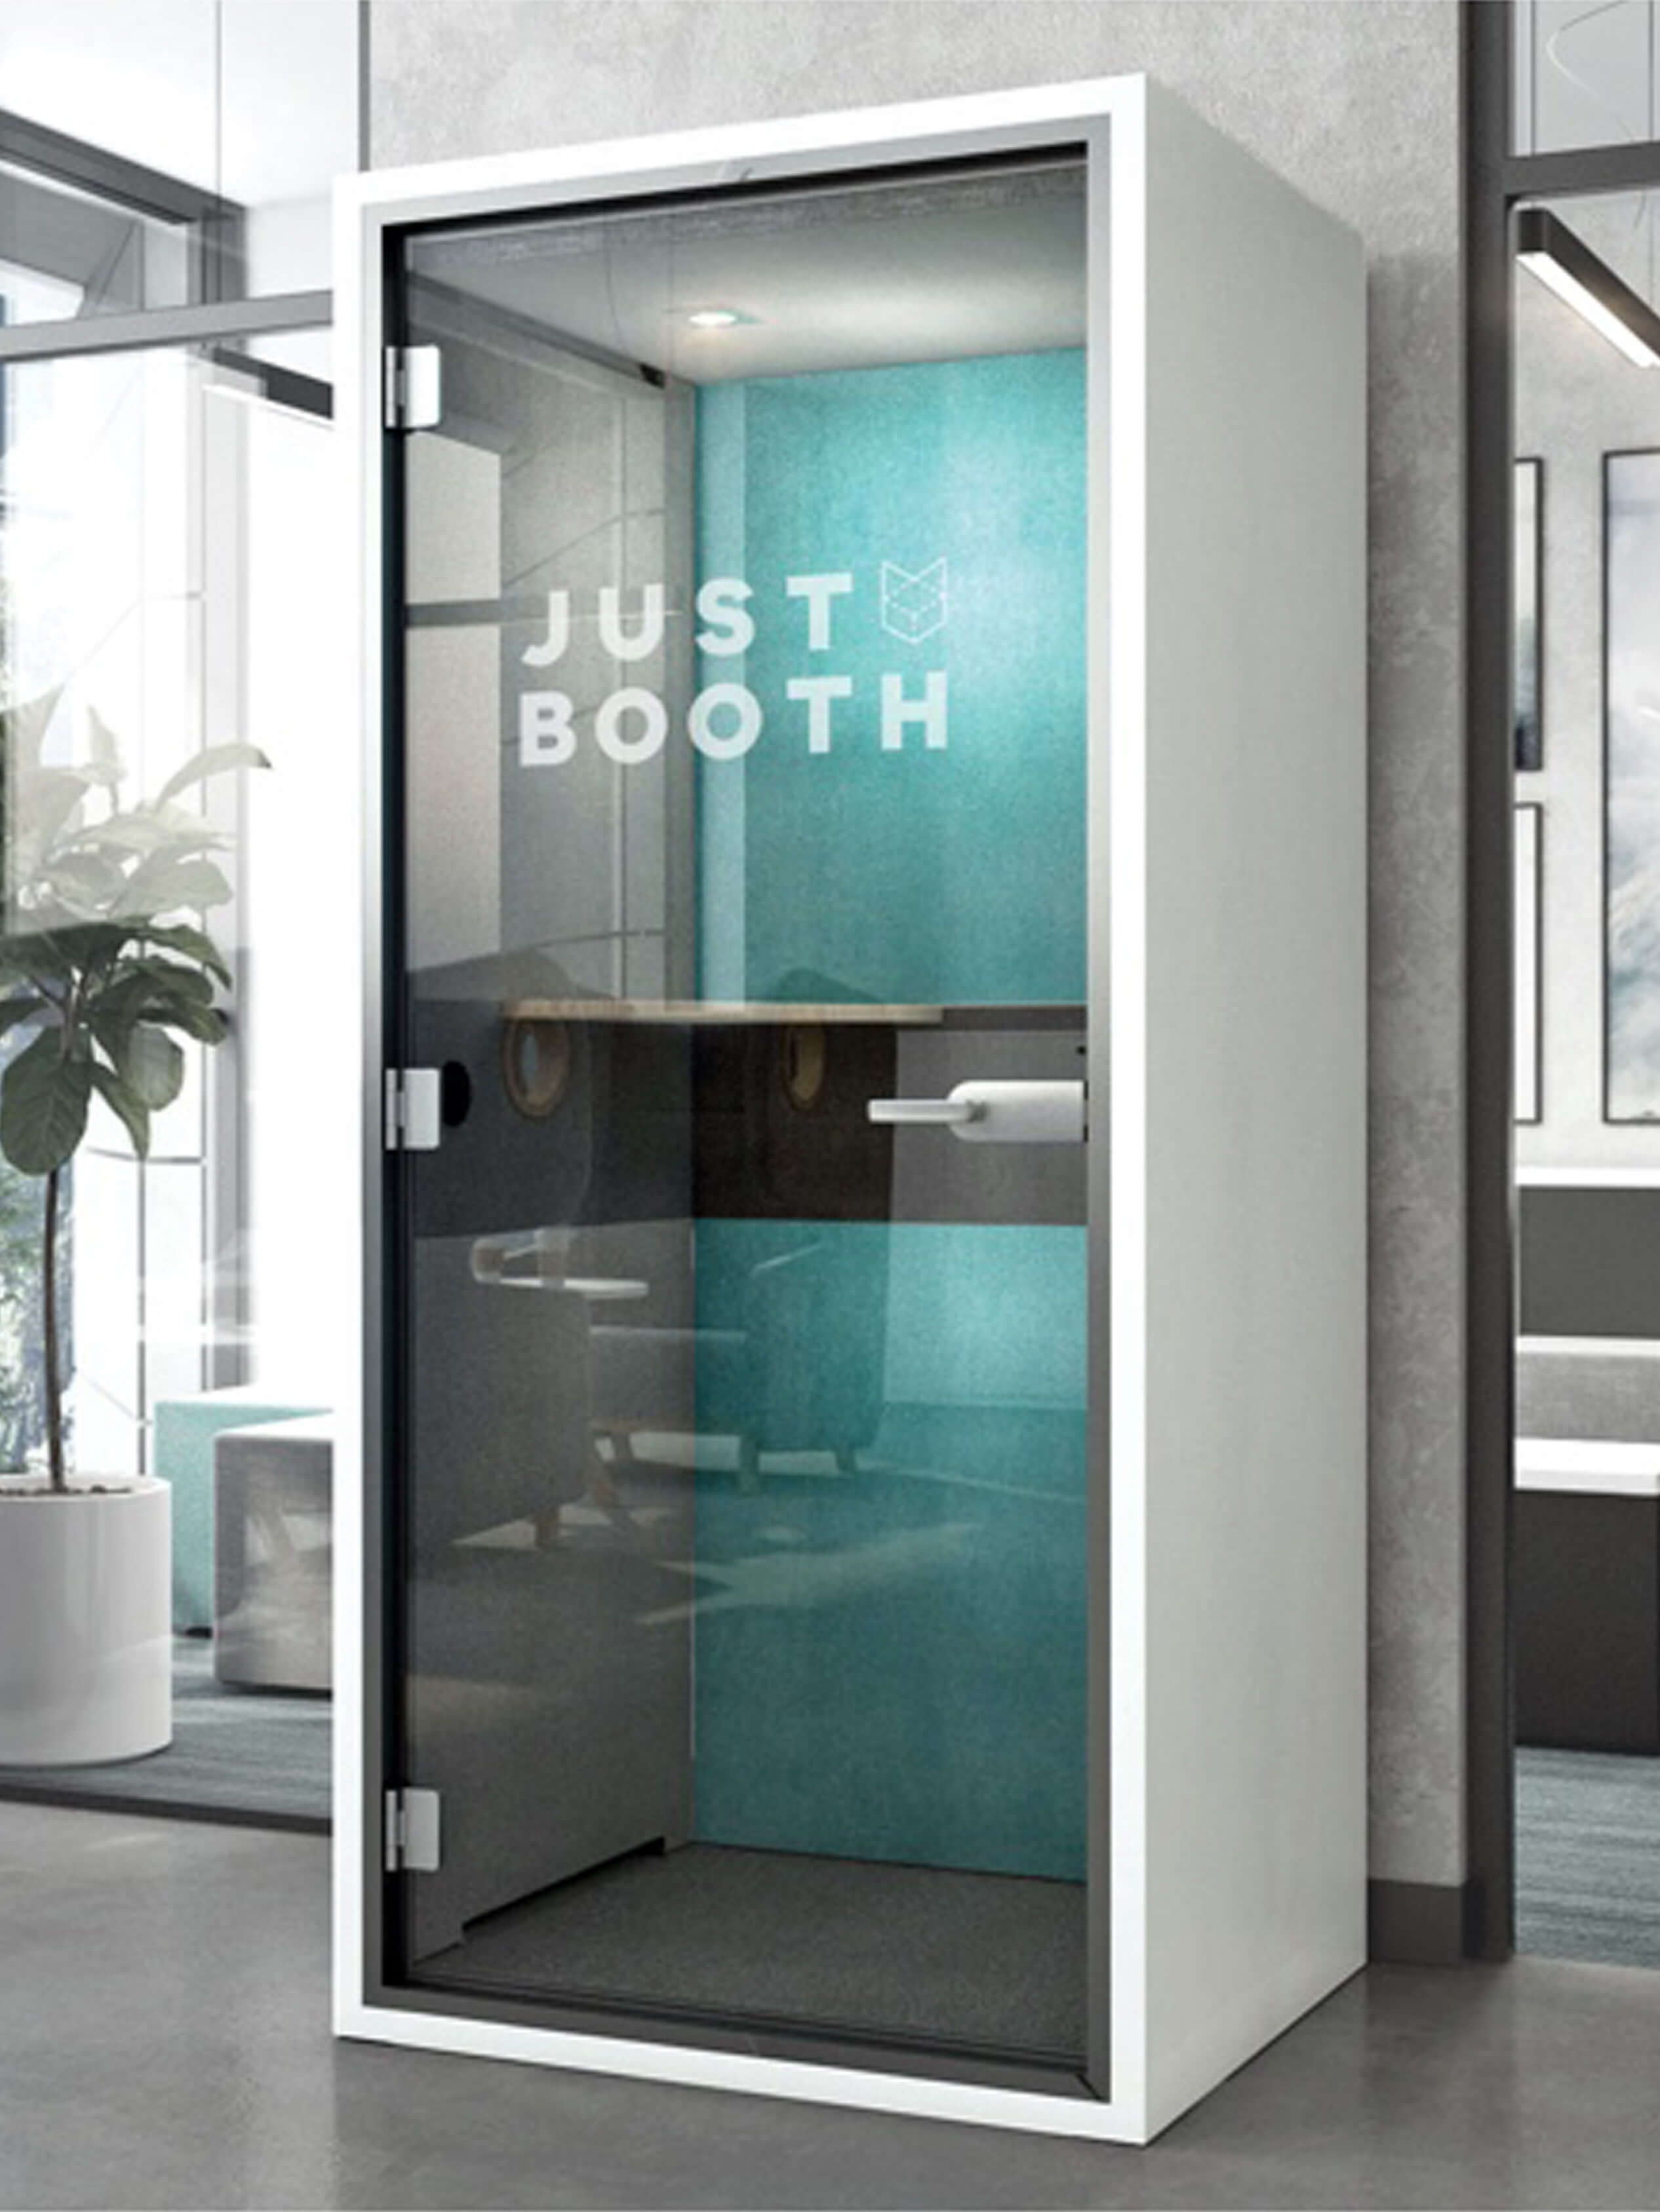 justbooth in aktion